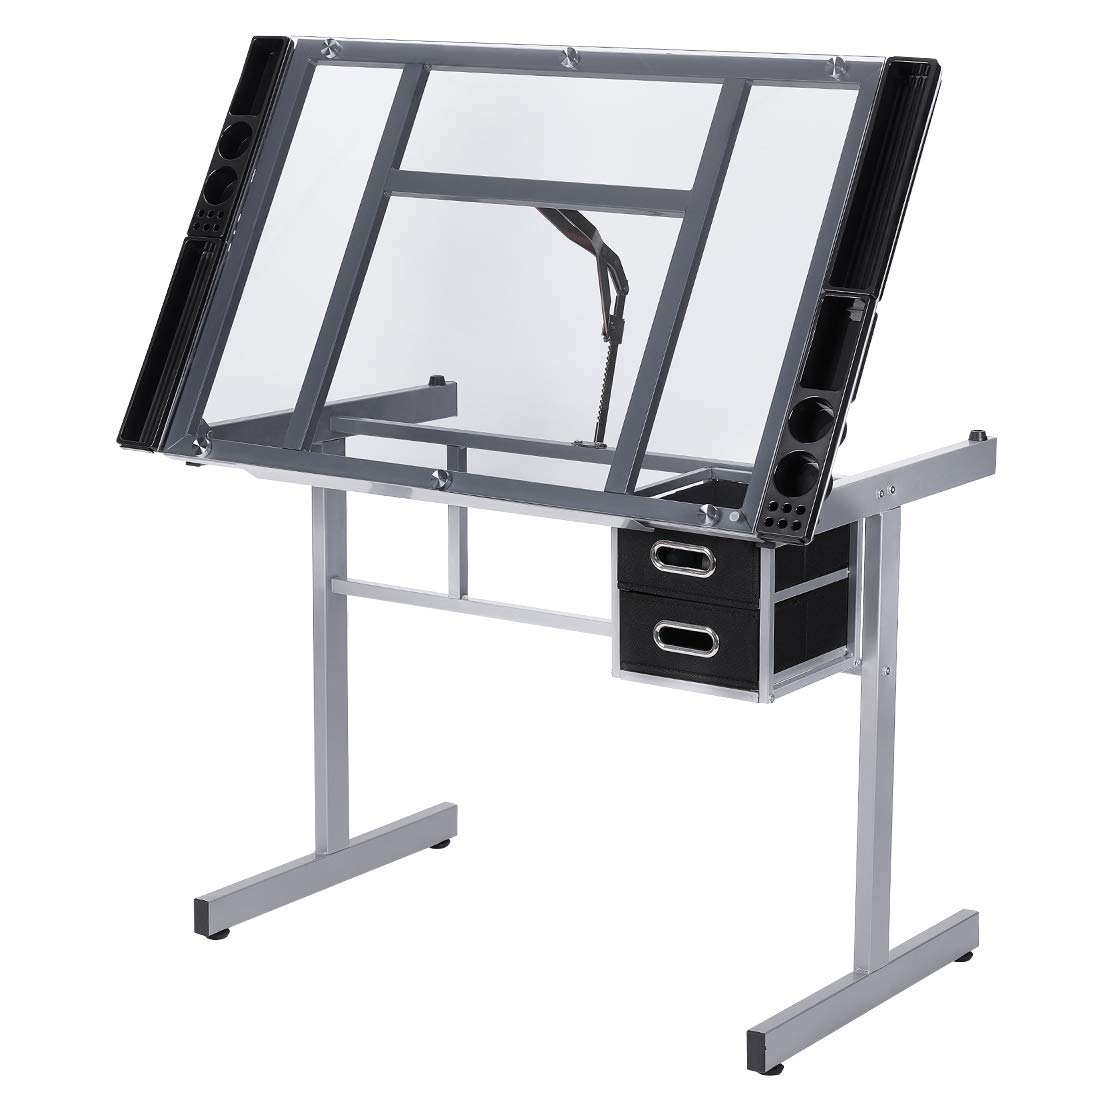 VIVOHOME Glass Adjustable Height Drafting Desk Drawing Table with 2 Storage Drawers for Kids Adults Artists by VIVOHOME